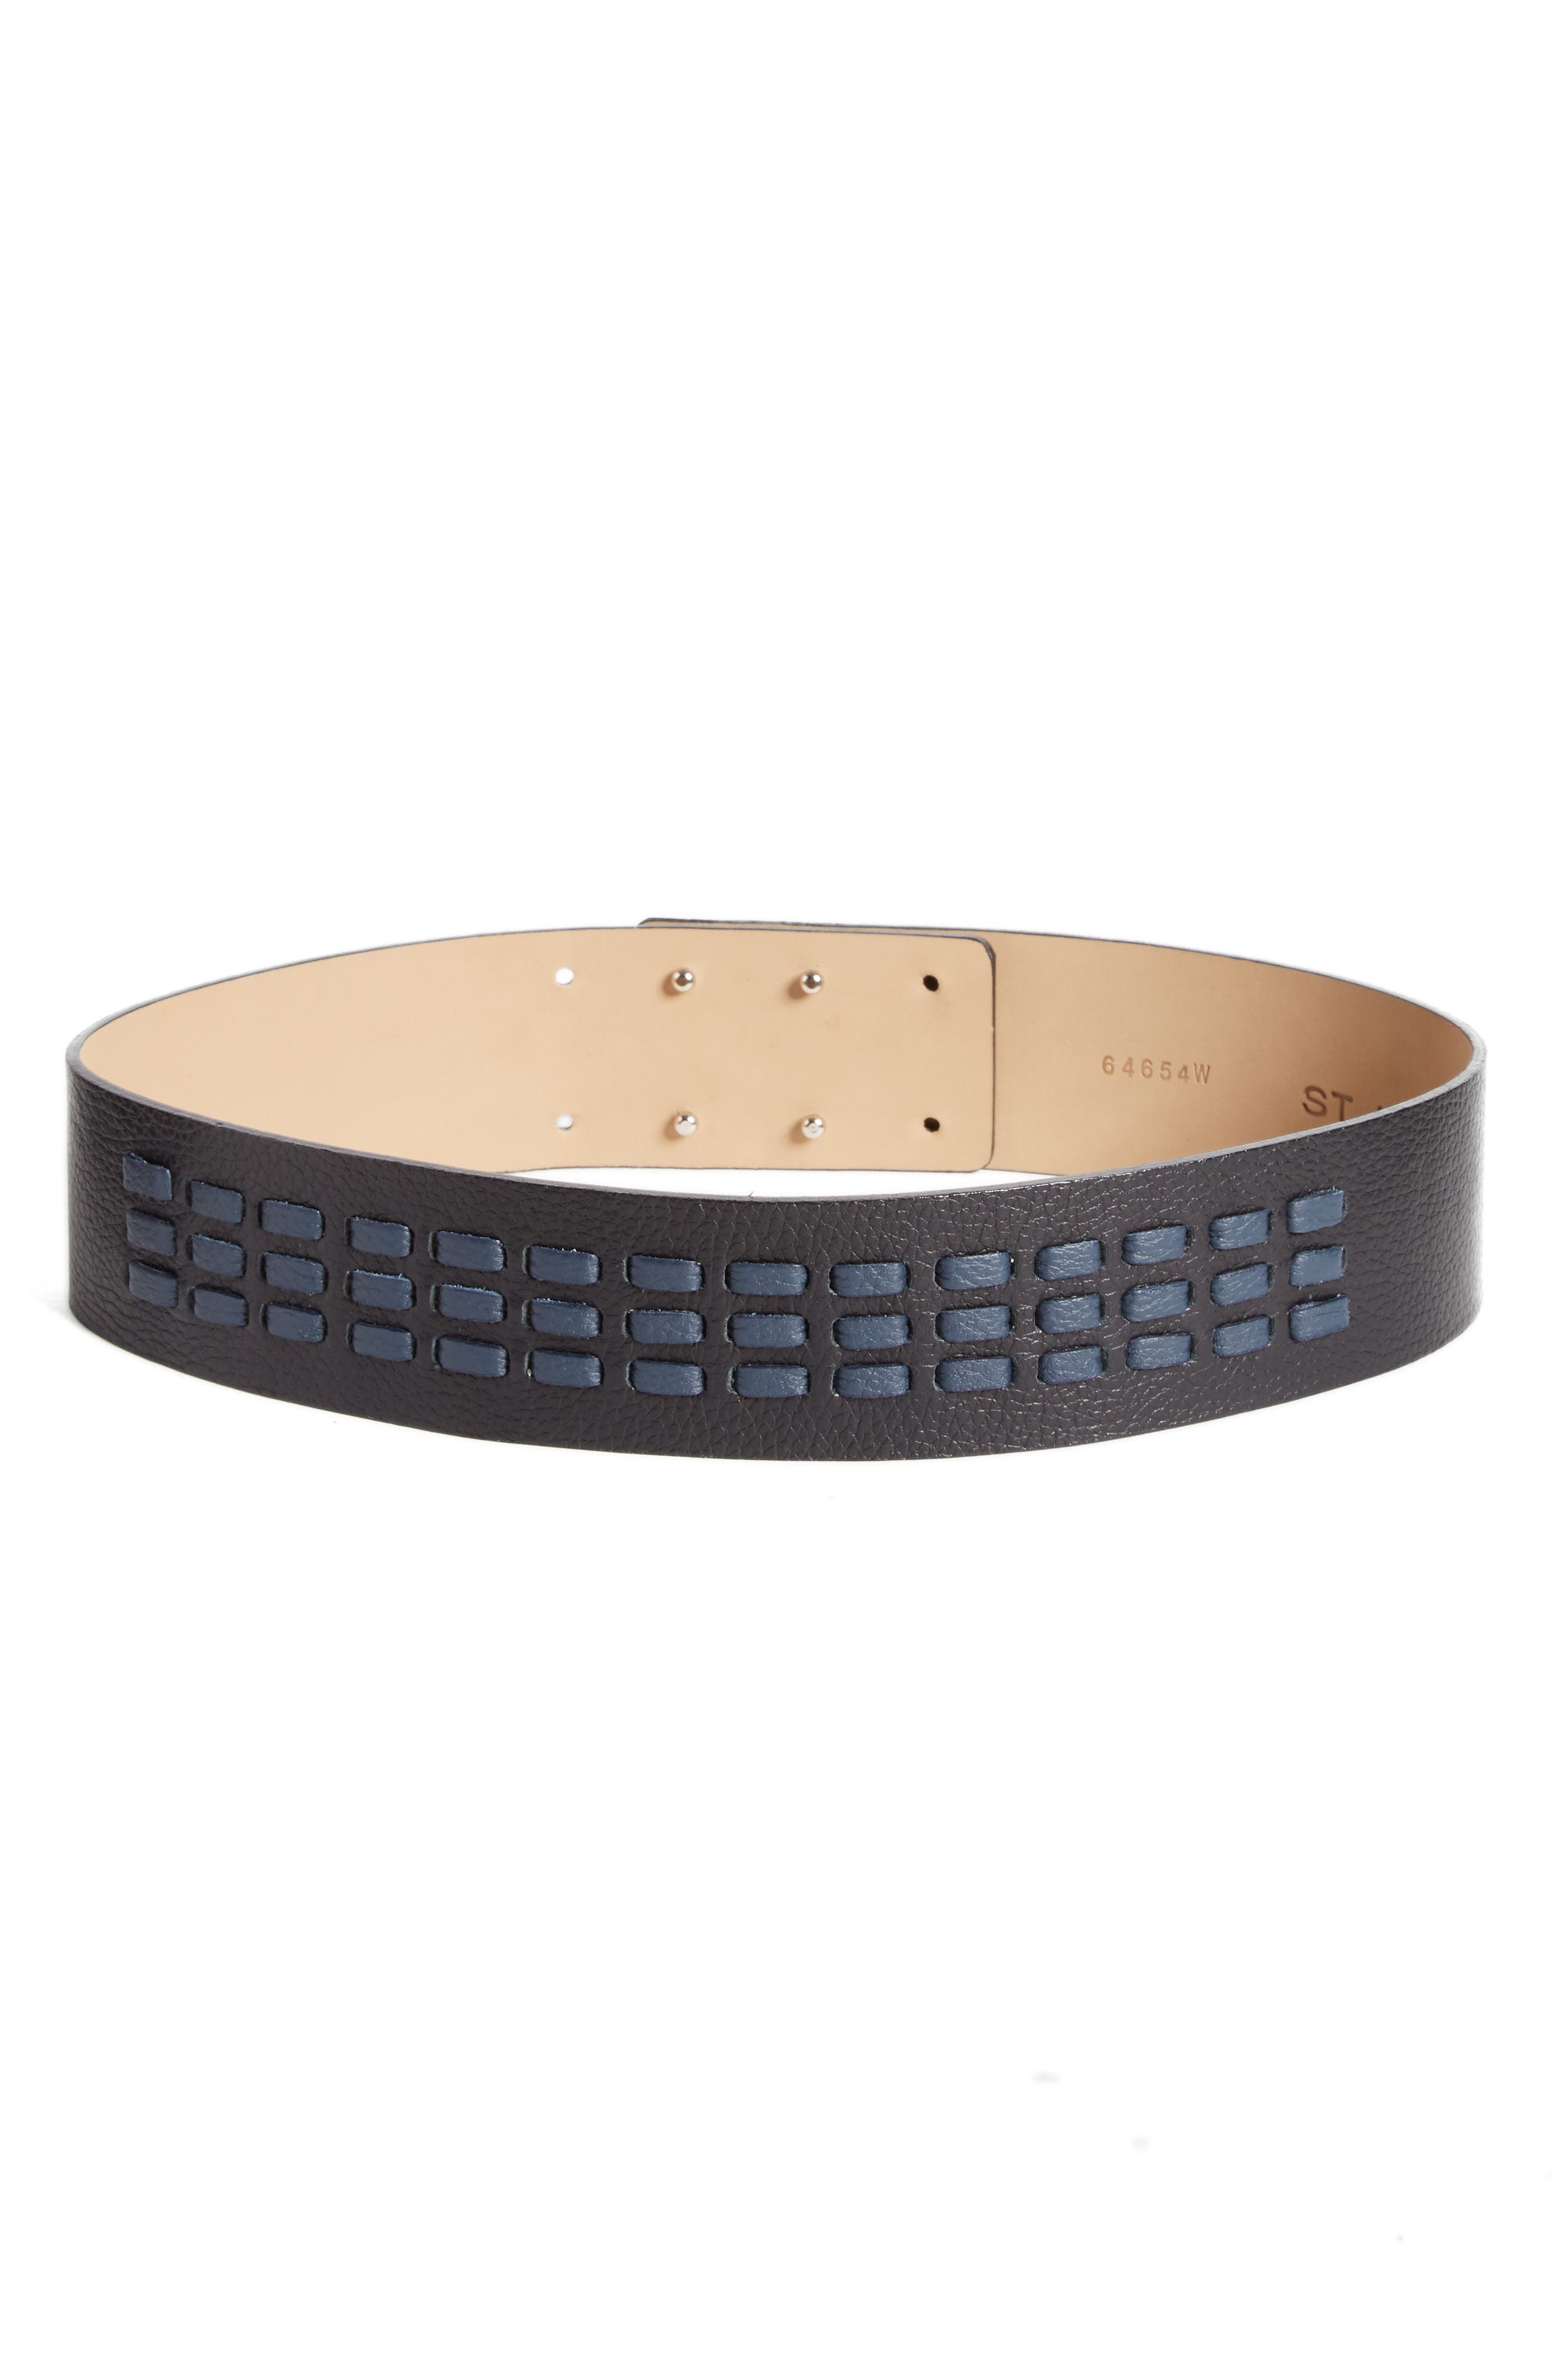 Woven Leather Belt,                             Main thumbnail 1, color,                             400